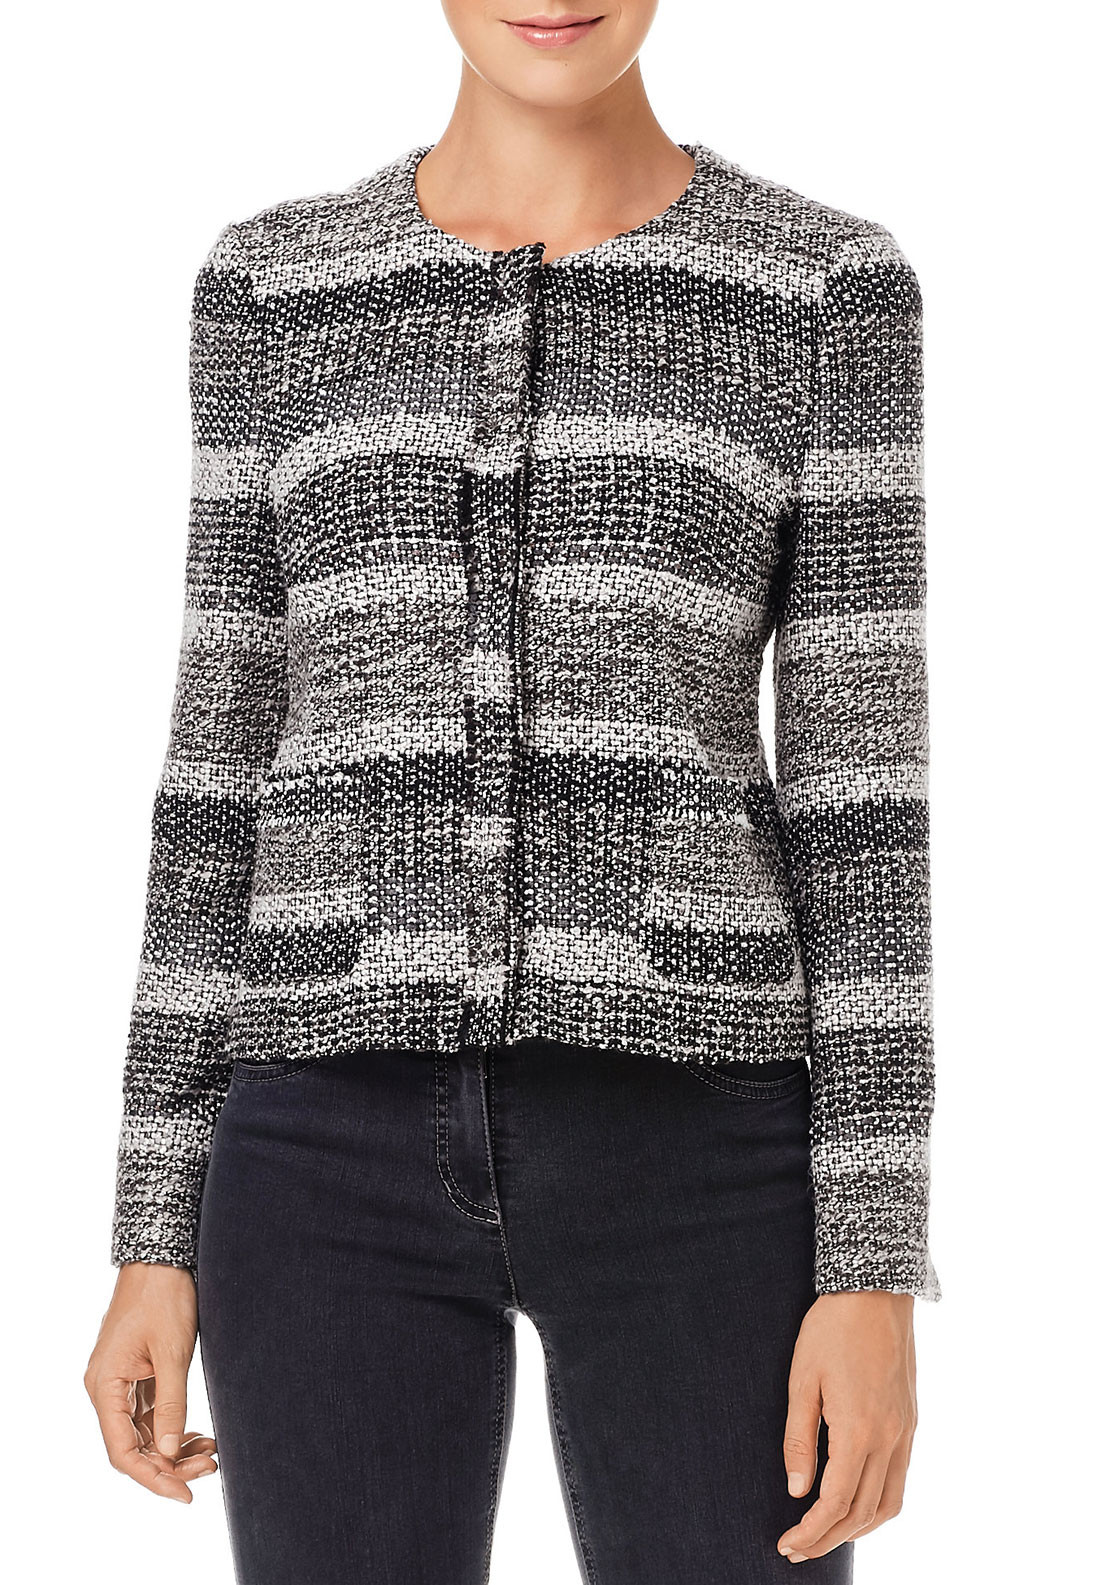 Gerry Weber Wool Blend Boucle Jacket, Multi-Coloured